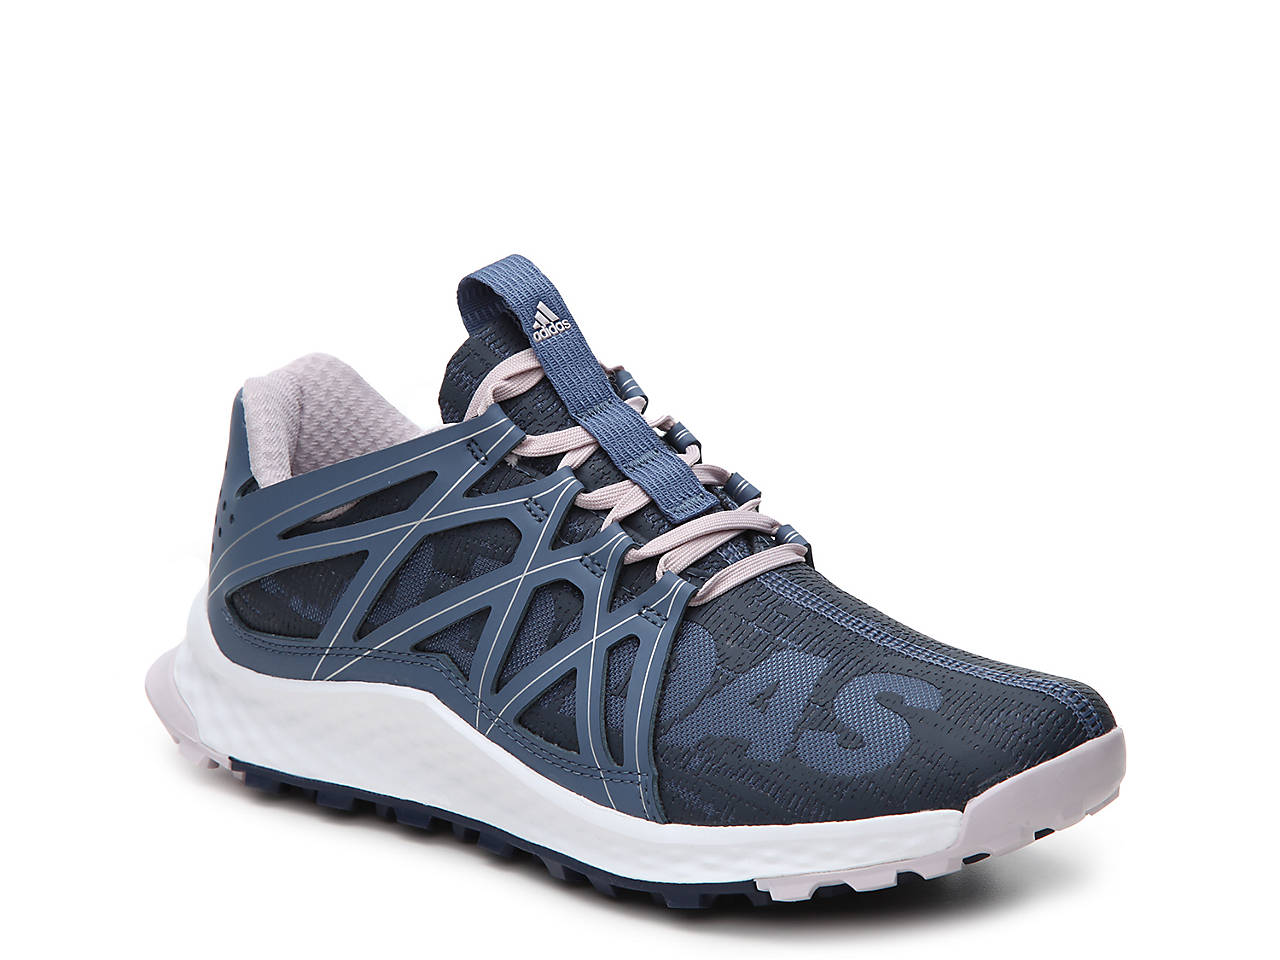 new style 8c696 b289d ... Vigor Bounce Trail Running Shoe - Womens; Adidas ...